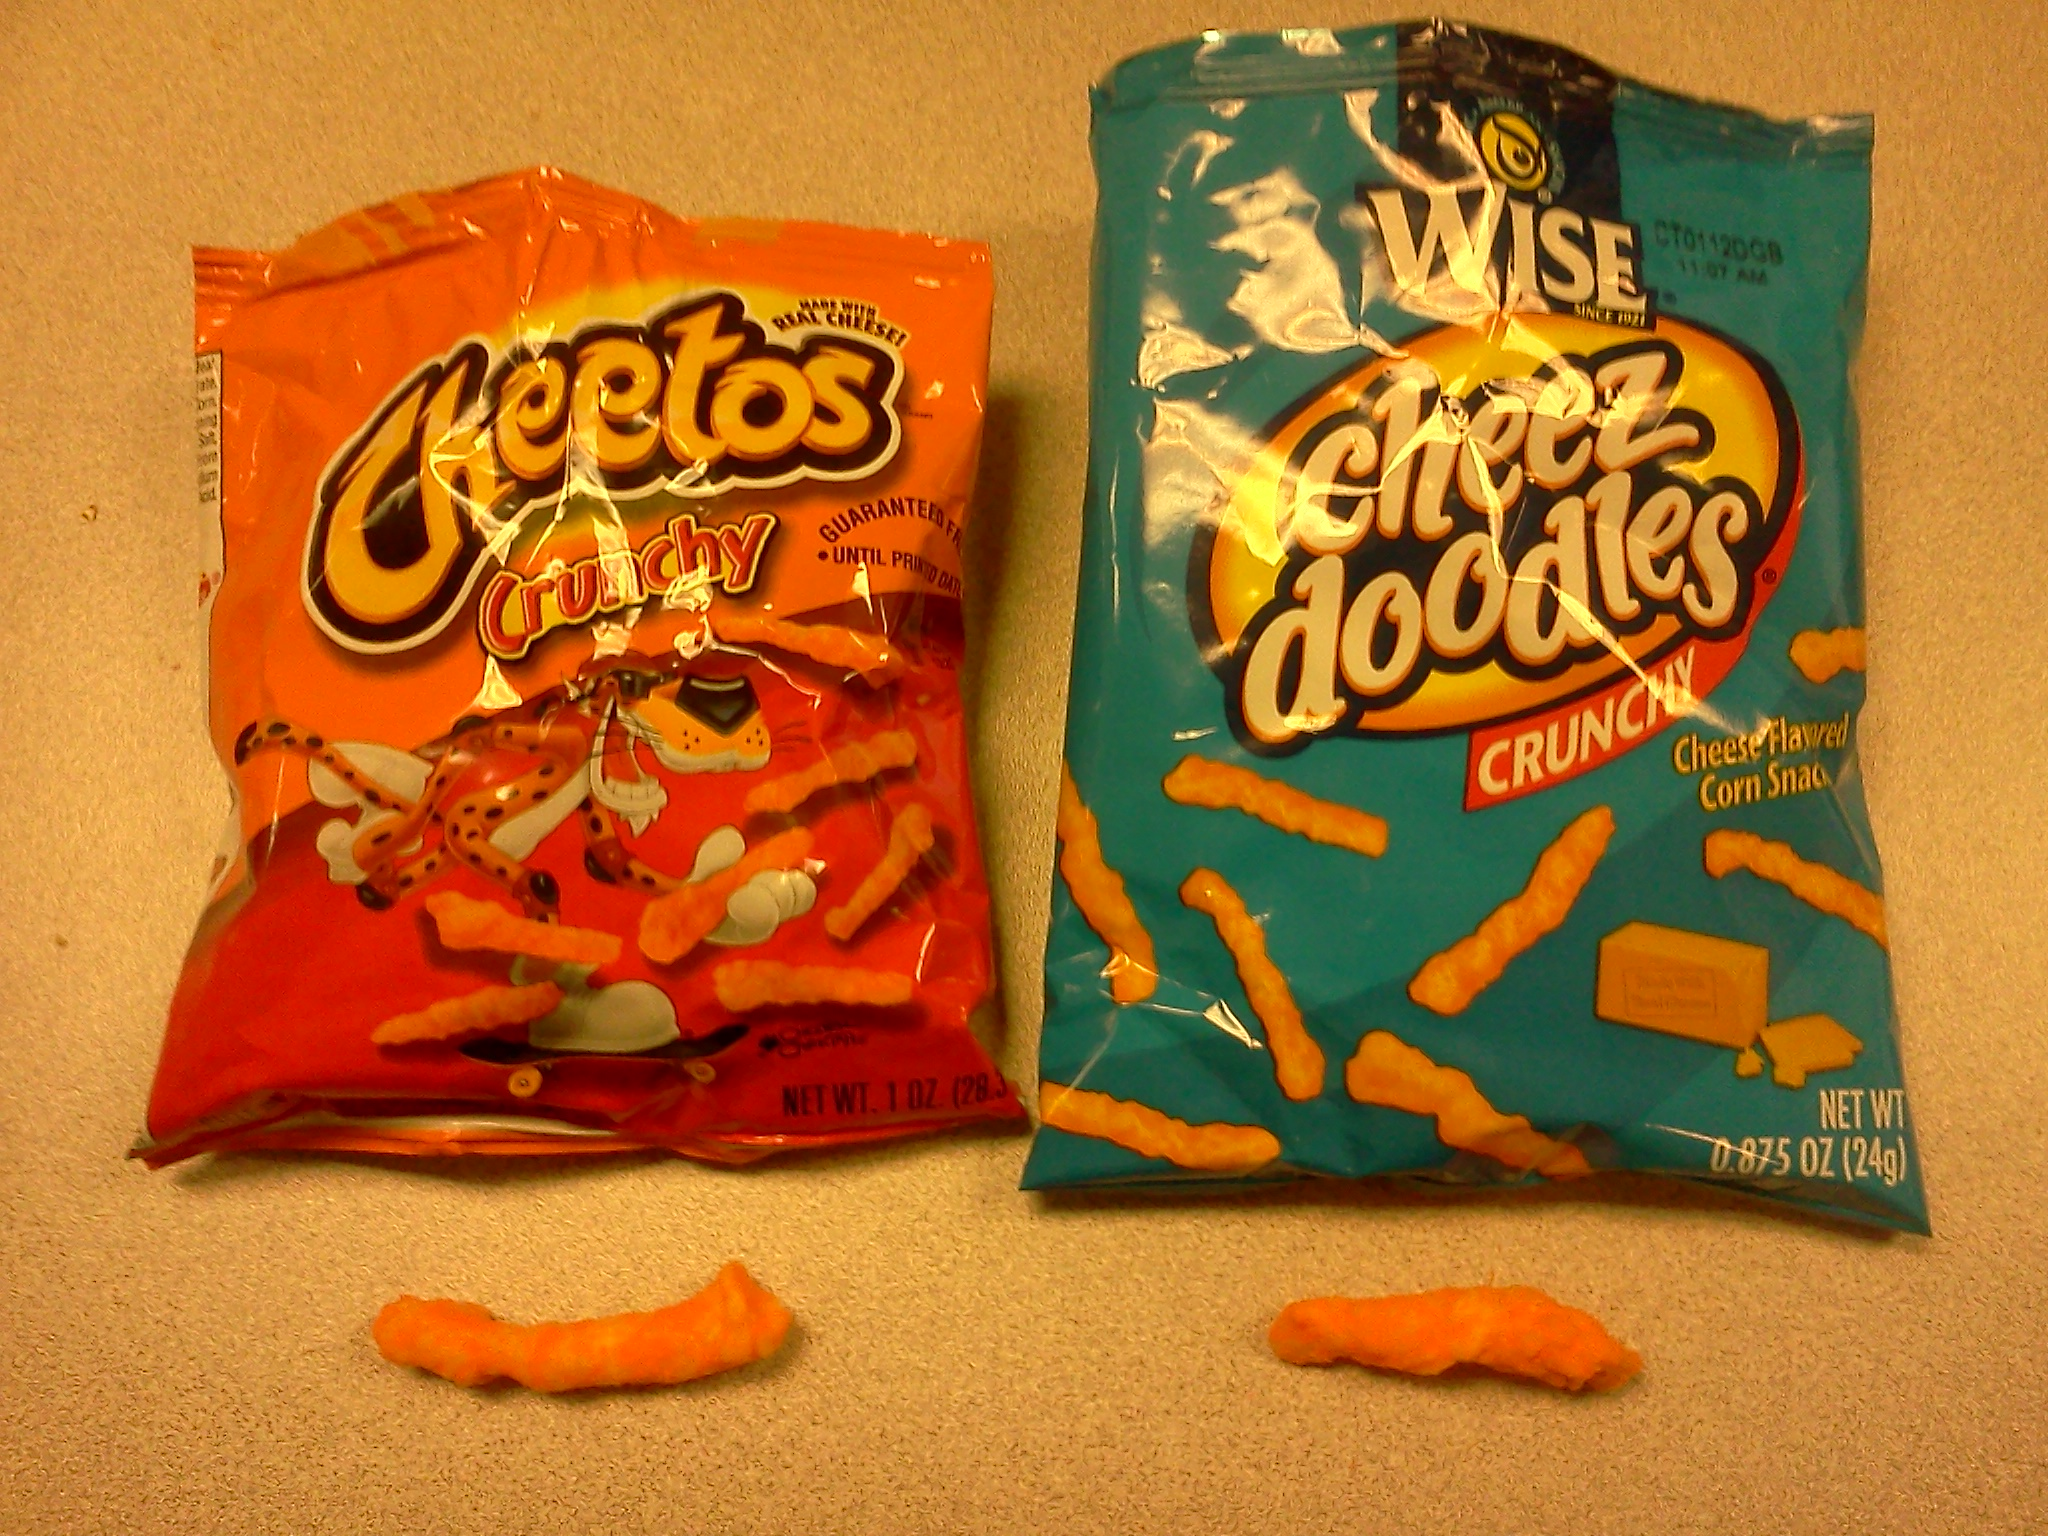 cheetos crunchy vs wise cheez doodles � theres some food